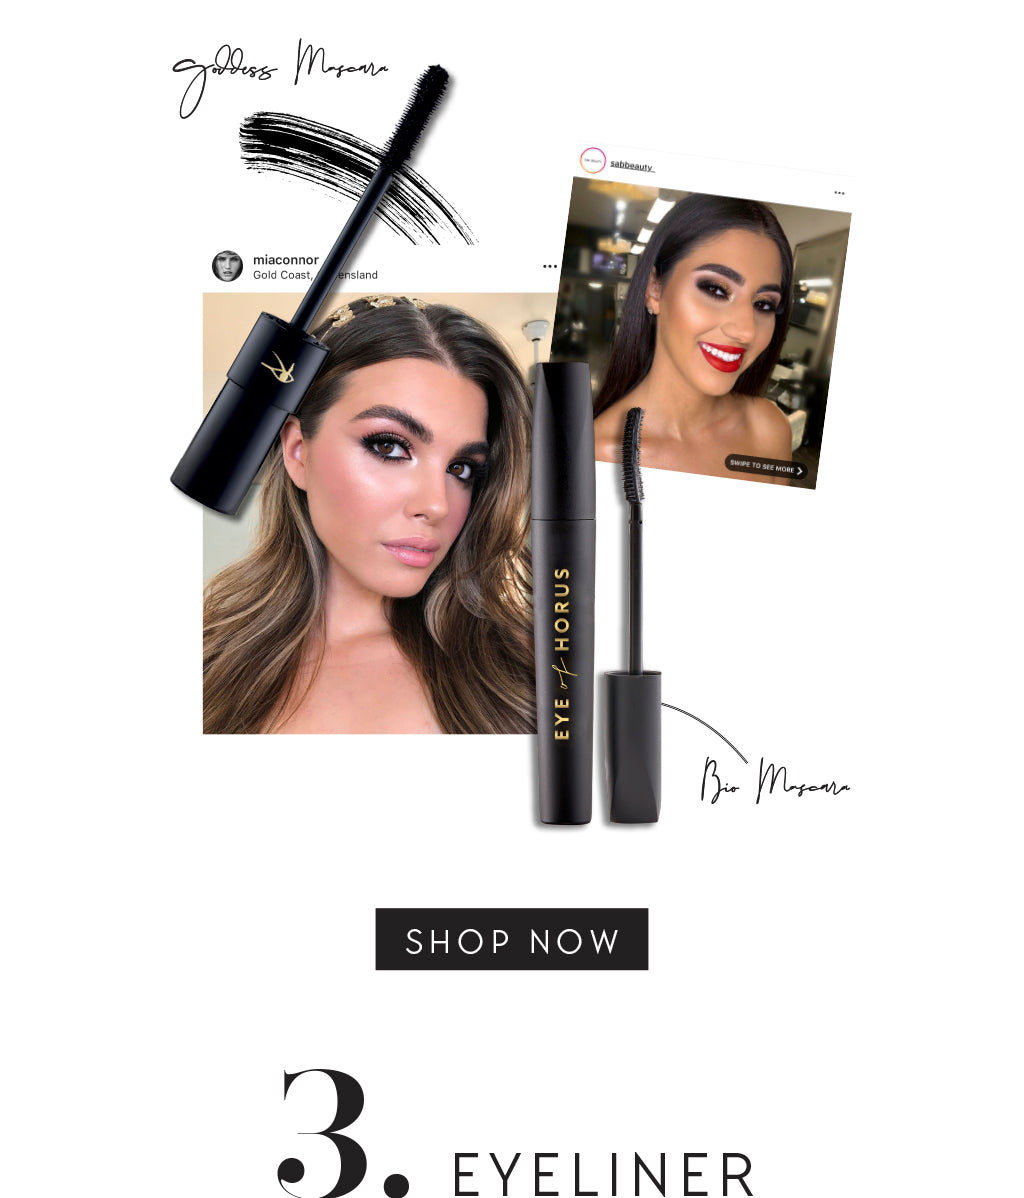 https://www.eyeofhoruscosmetics.com/collections/mascara